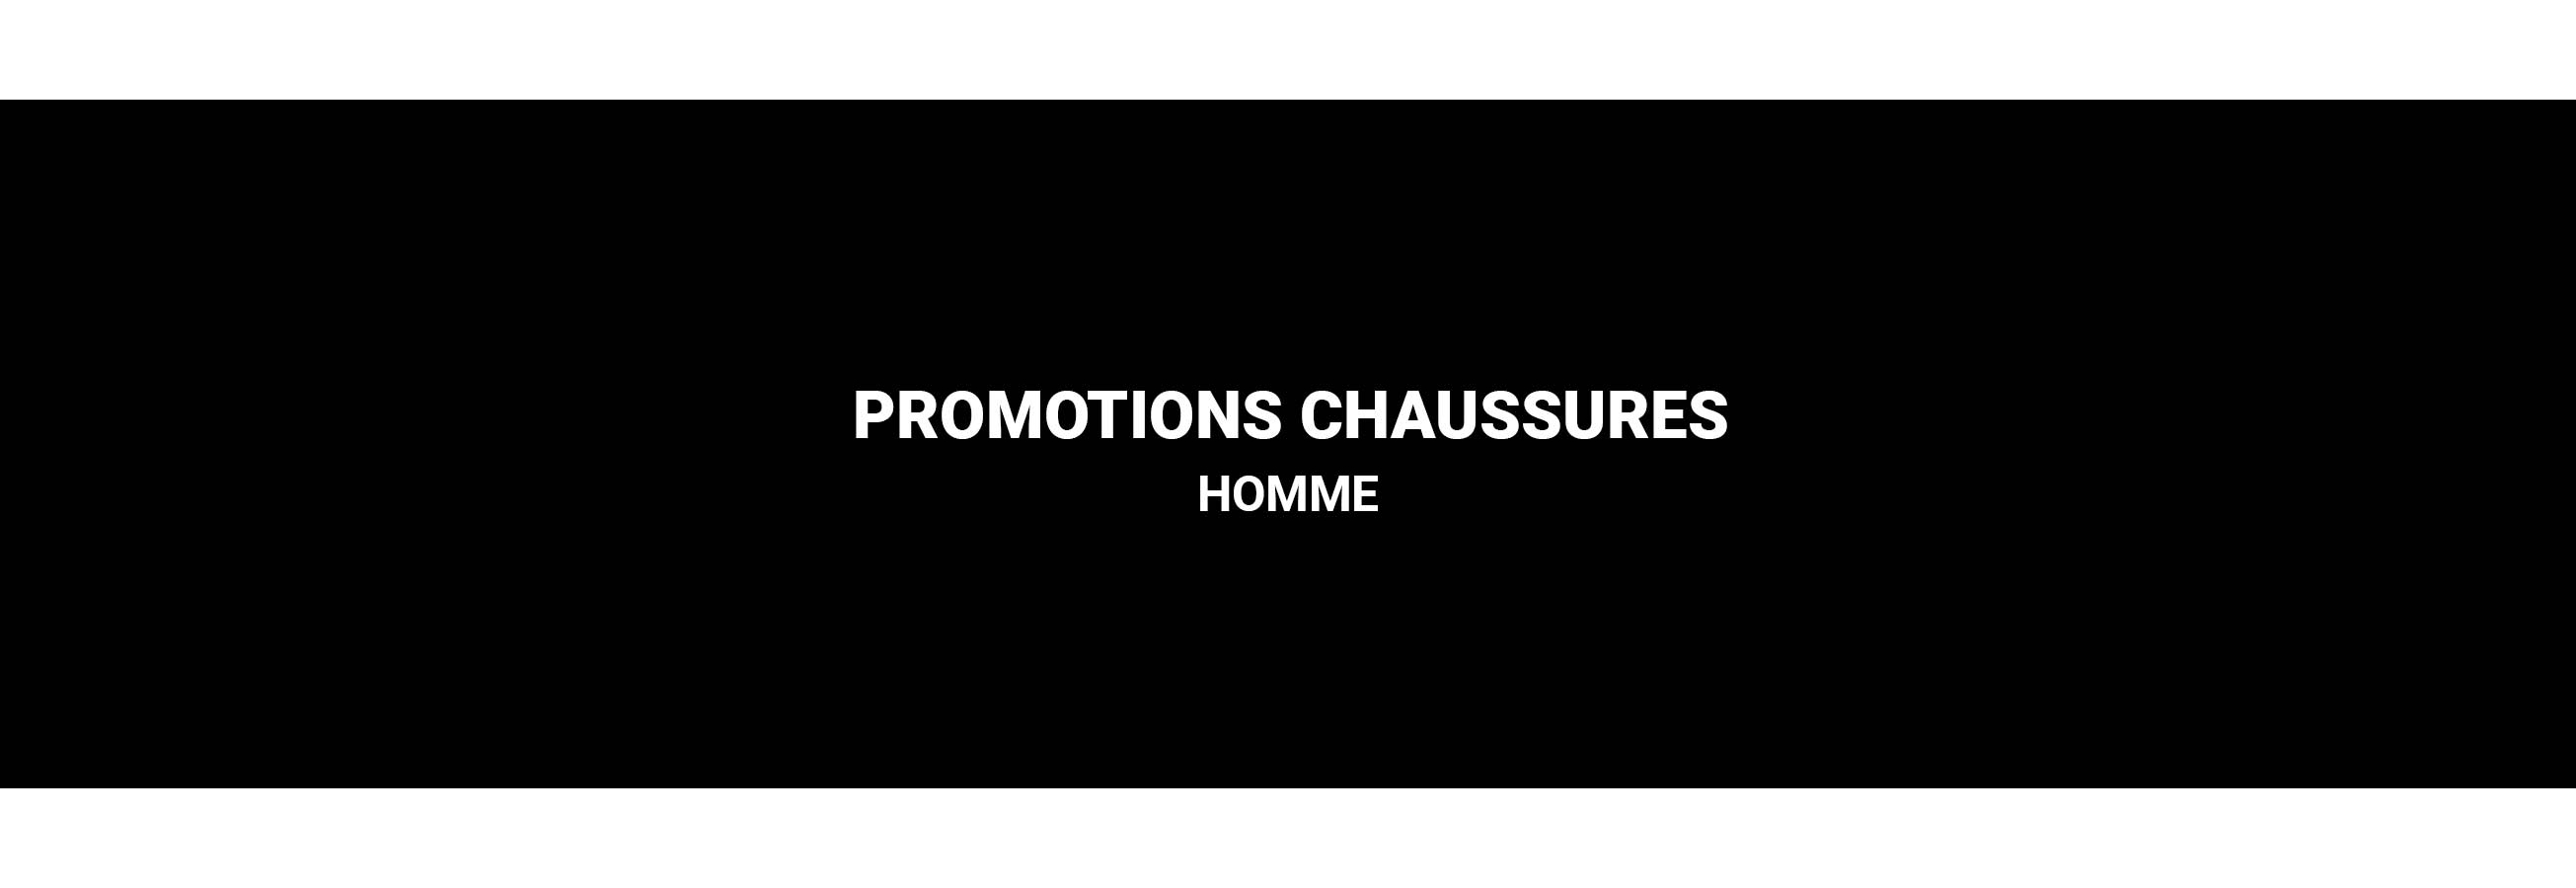 PROMOTIONS CHAUSSURES HOMMES